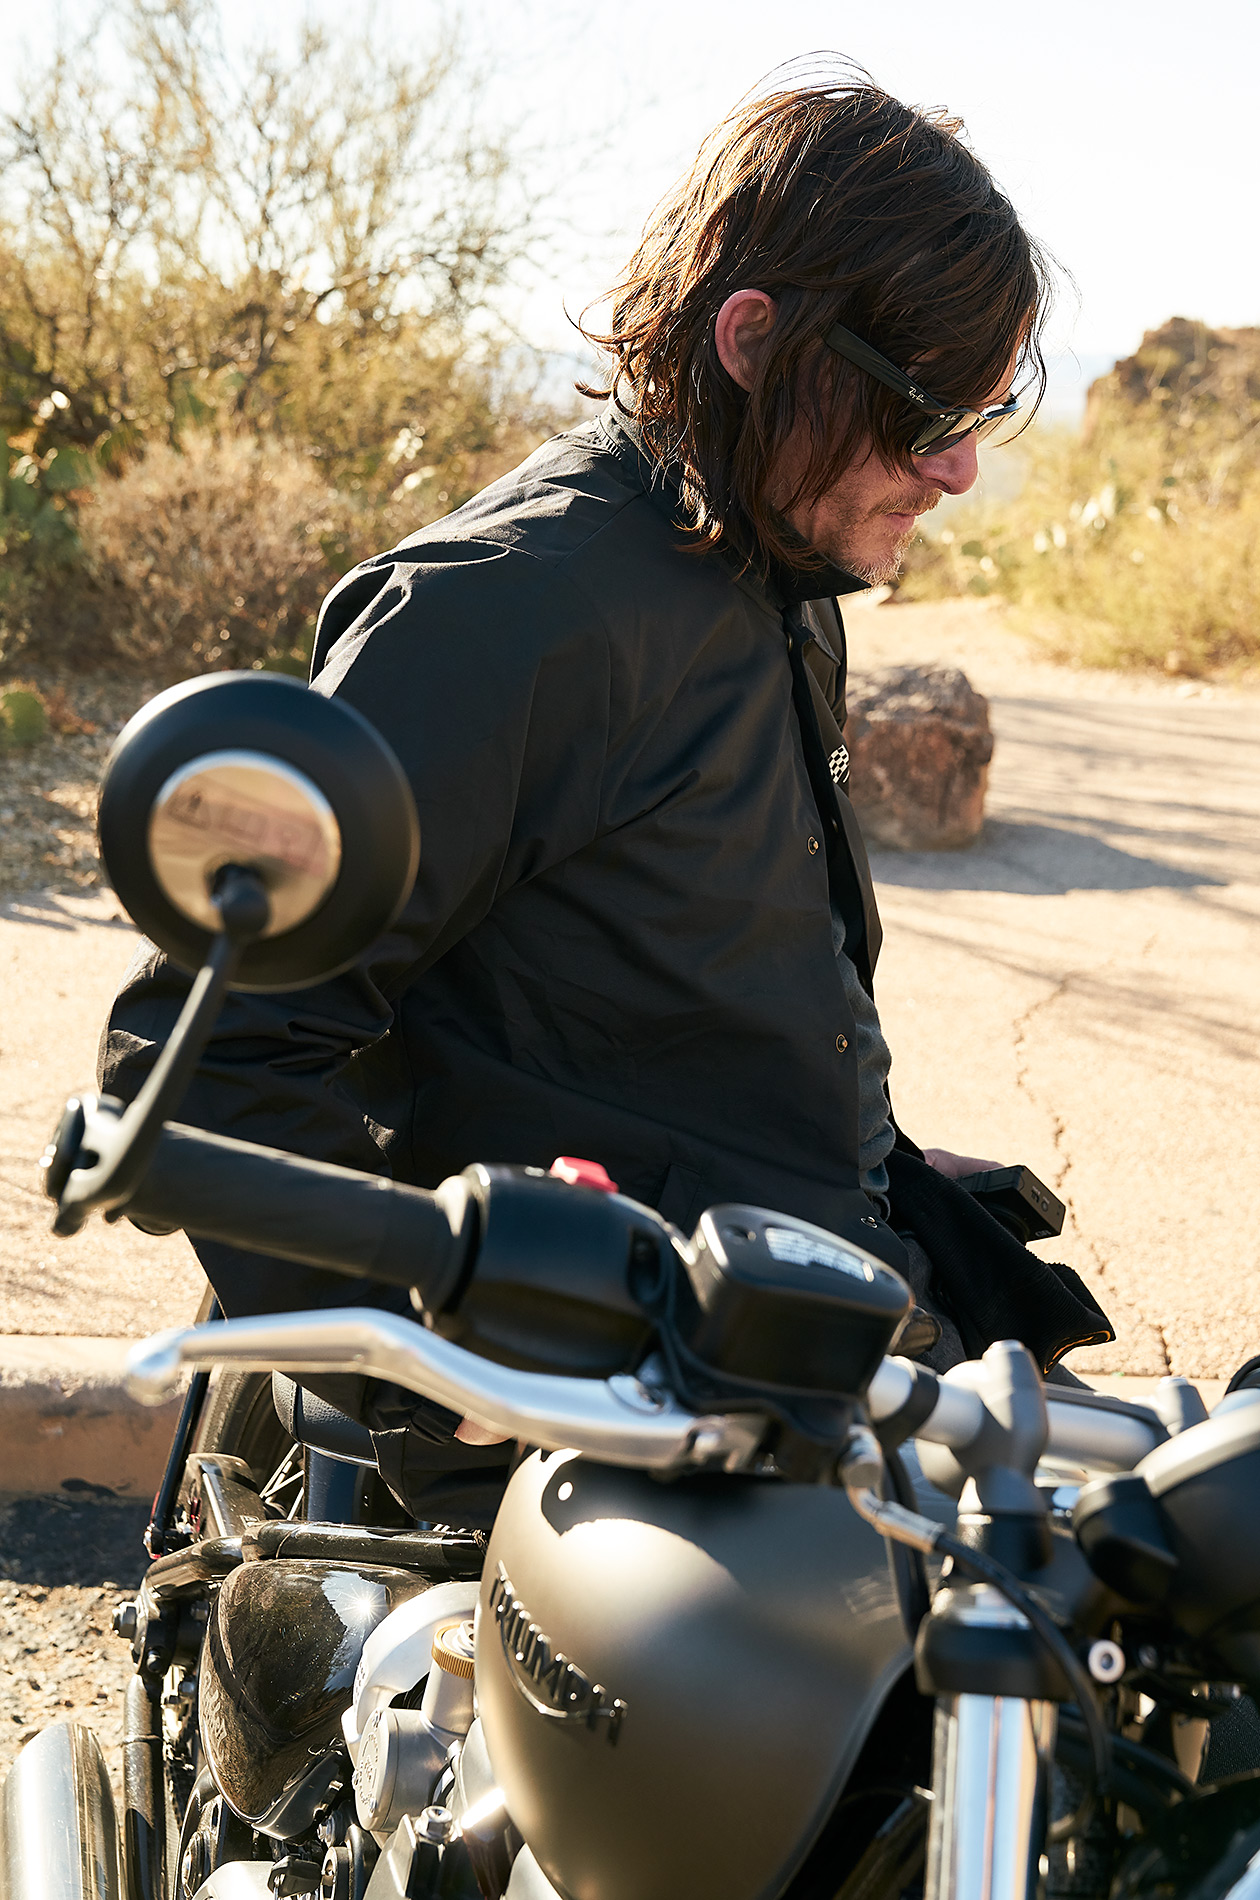 Norman Reedus for AMC - Steve Craft Photography - Phoenix Arizona Photographer